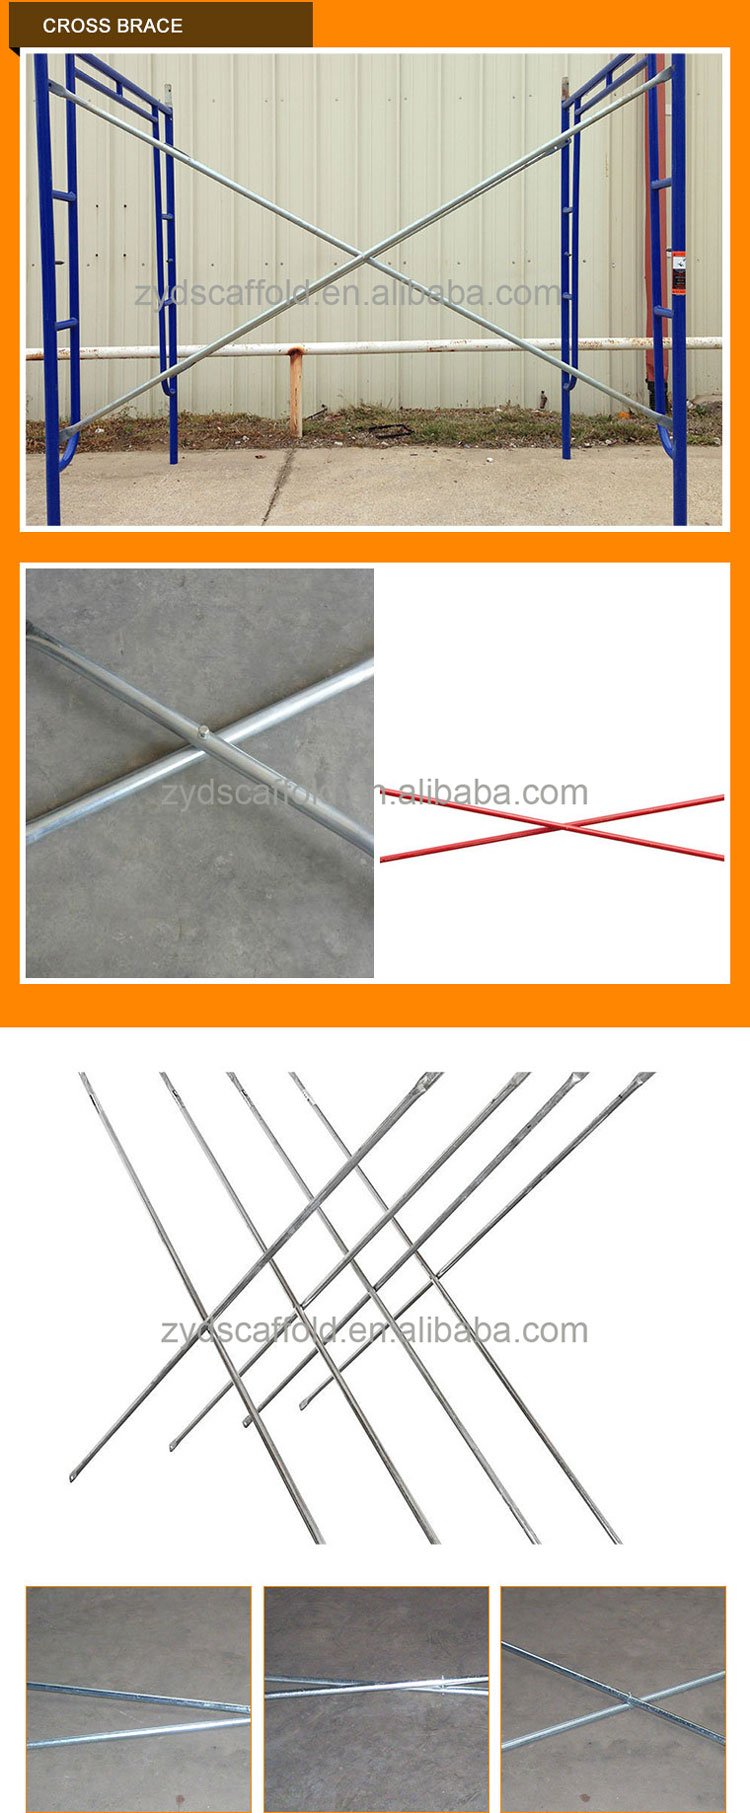 Jiangyin H Frame Scaffold Parts Cross Brace